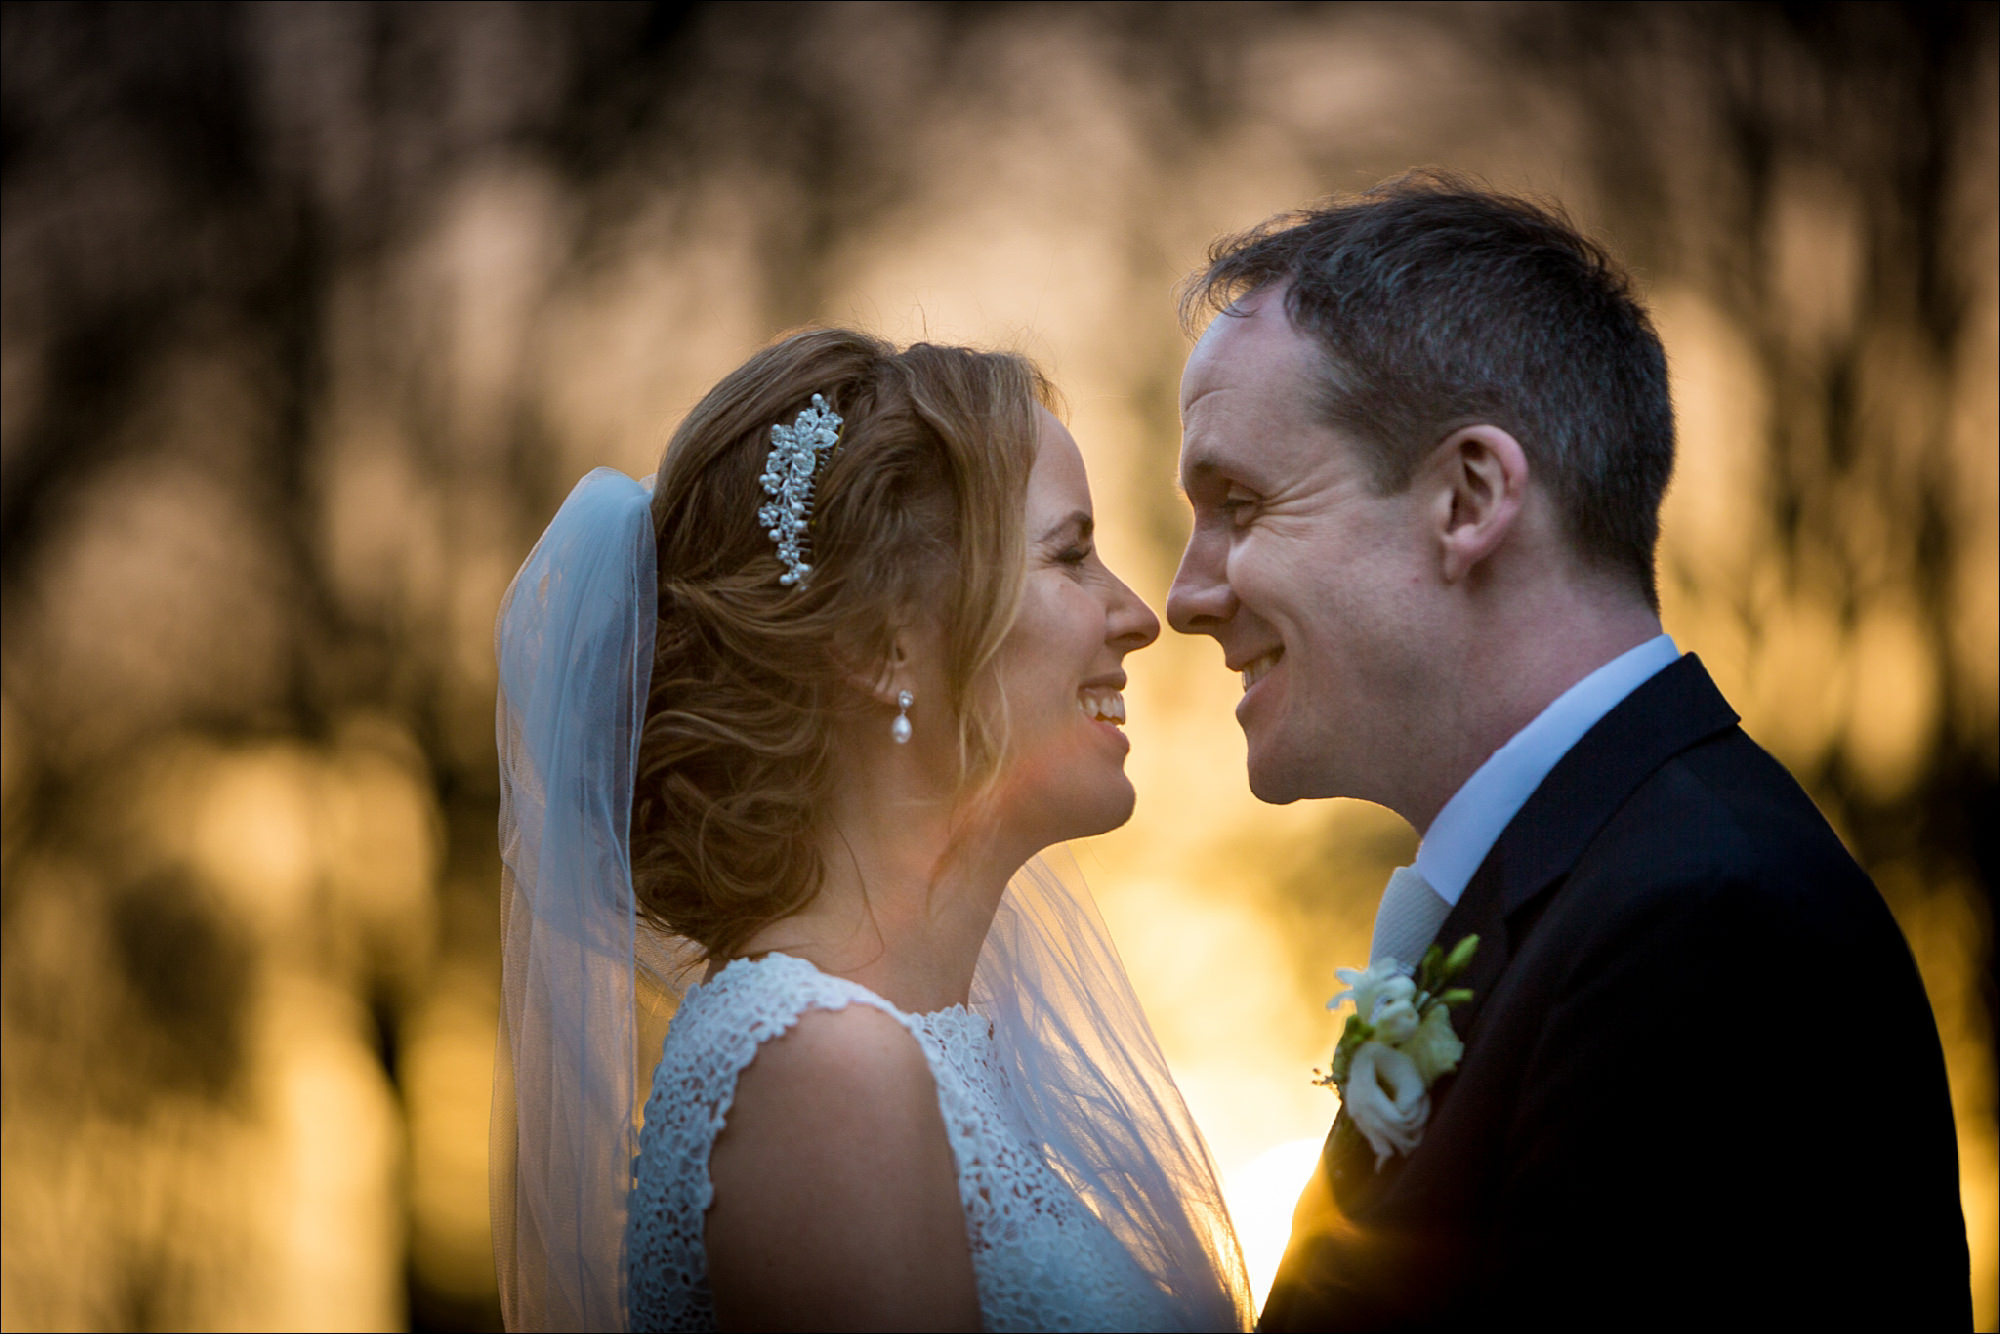 dublin wedding photographer david duignan photography tankardstown weddings slane rathfeigh church ireland 0041